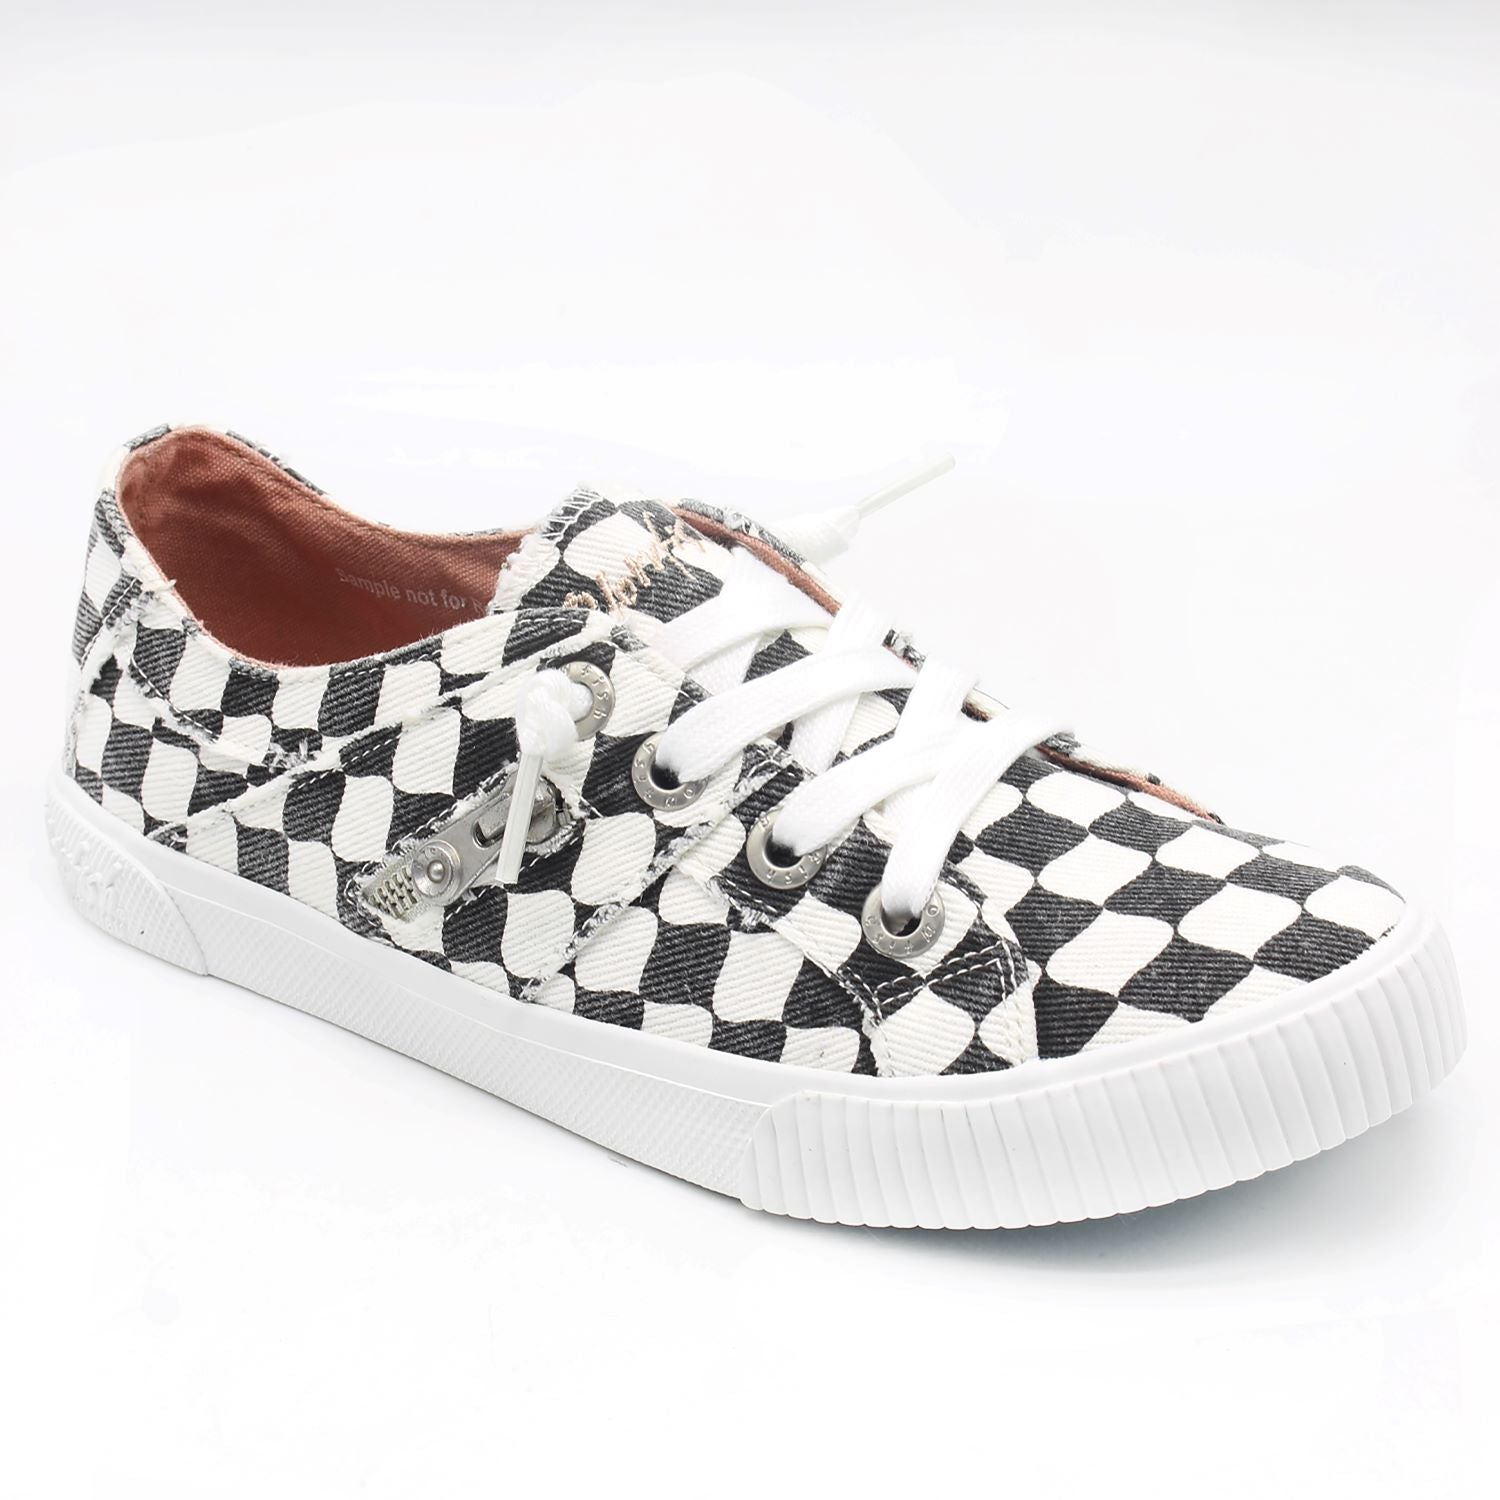 'Blowfish Malibu' Fruit ZS-0269 753 - Slip-on Shoe - Off White Munky Check